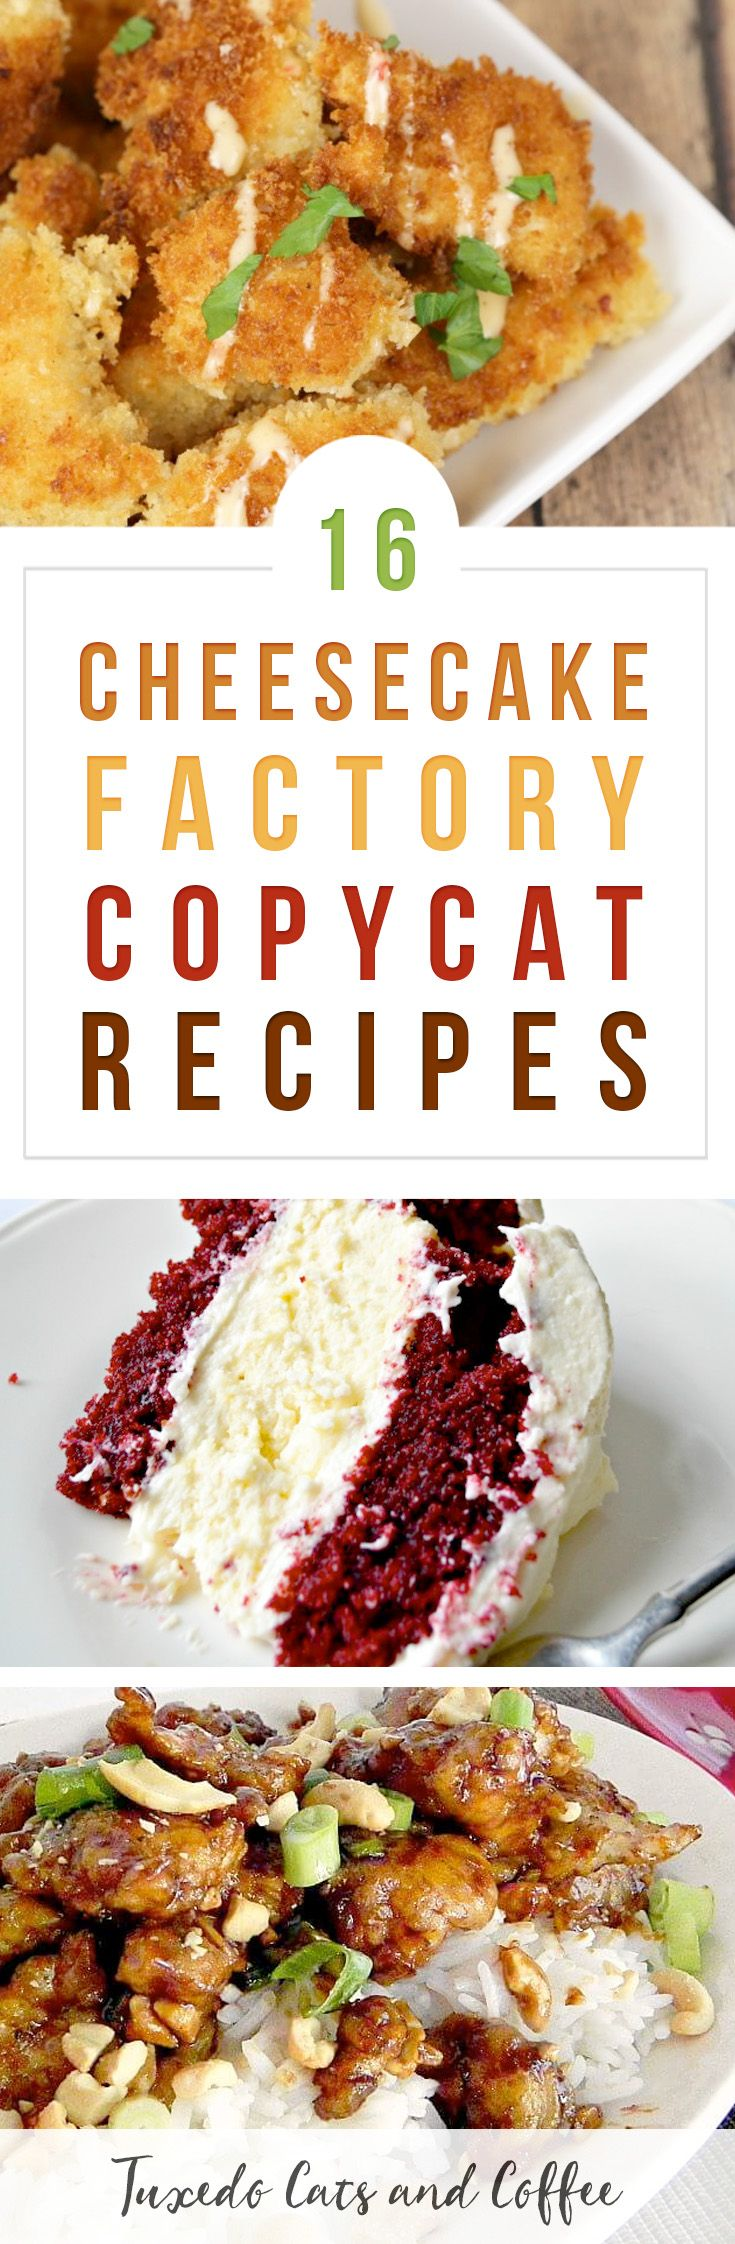 I LOVE Cheesecake Factory!  It's definitely one of my favorite chain restaurants, but I can't eat there every day. ;) So here are 16+ Cheesecake Factory copycat recipes to bring your favorite recipes home! #copycatrecipes #restaurantrecipes